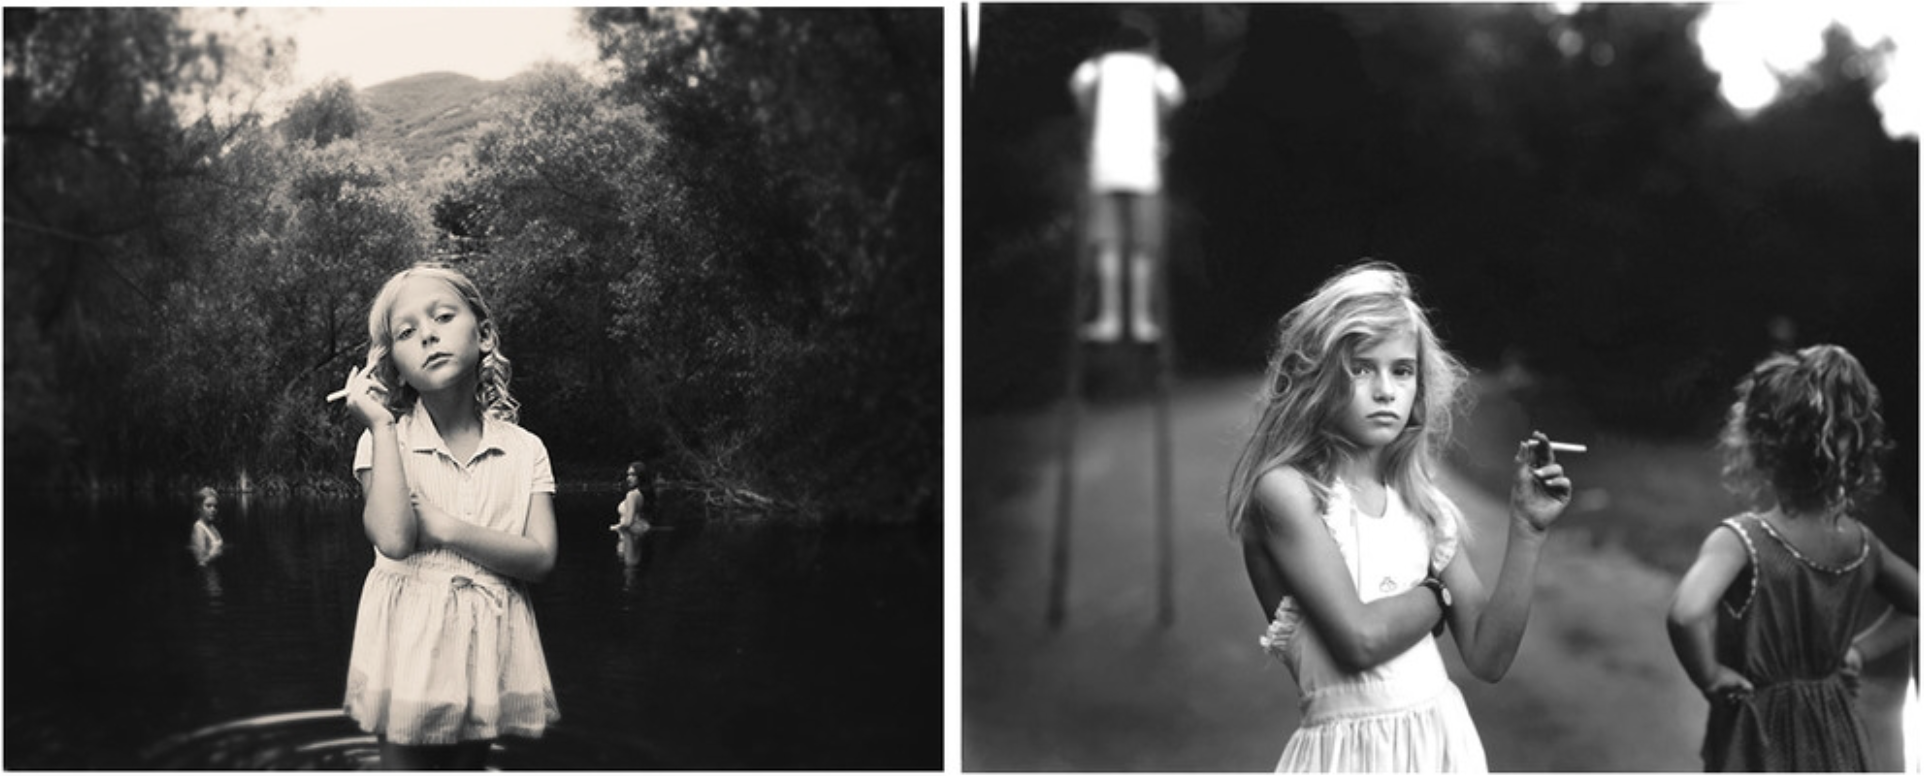 Is photographer Tyler Shields just ripping off other photographers? Vice's Jamie Lee Curtis Taete considers the question. Left, Tyler Shields, 2014. Right, Sally Mann, 1989. (via Vice)